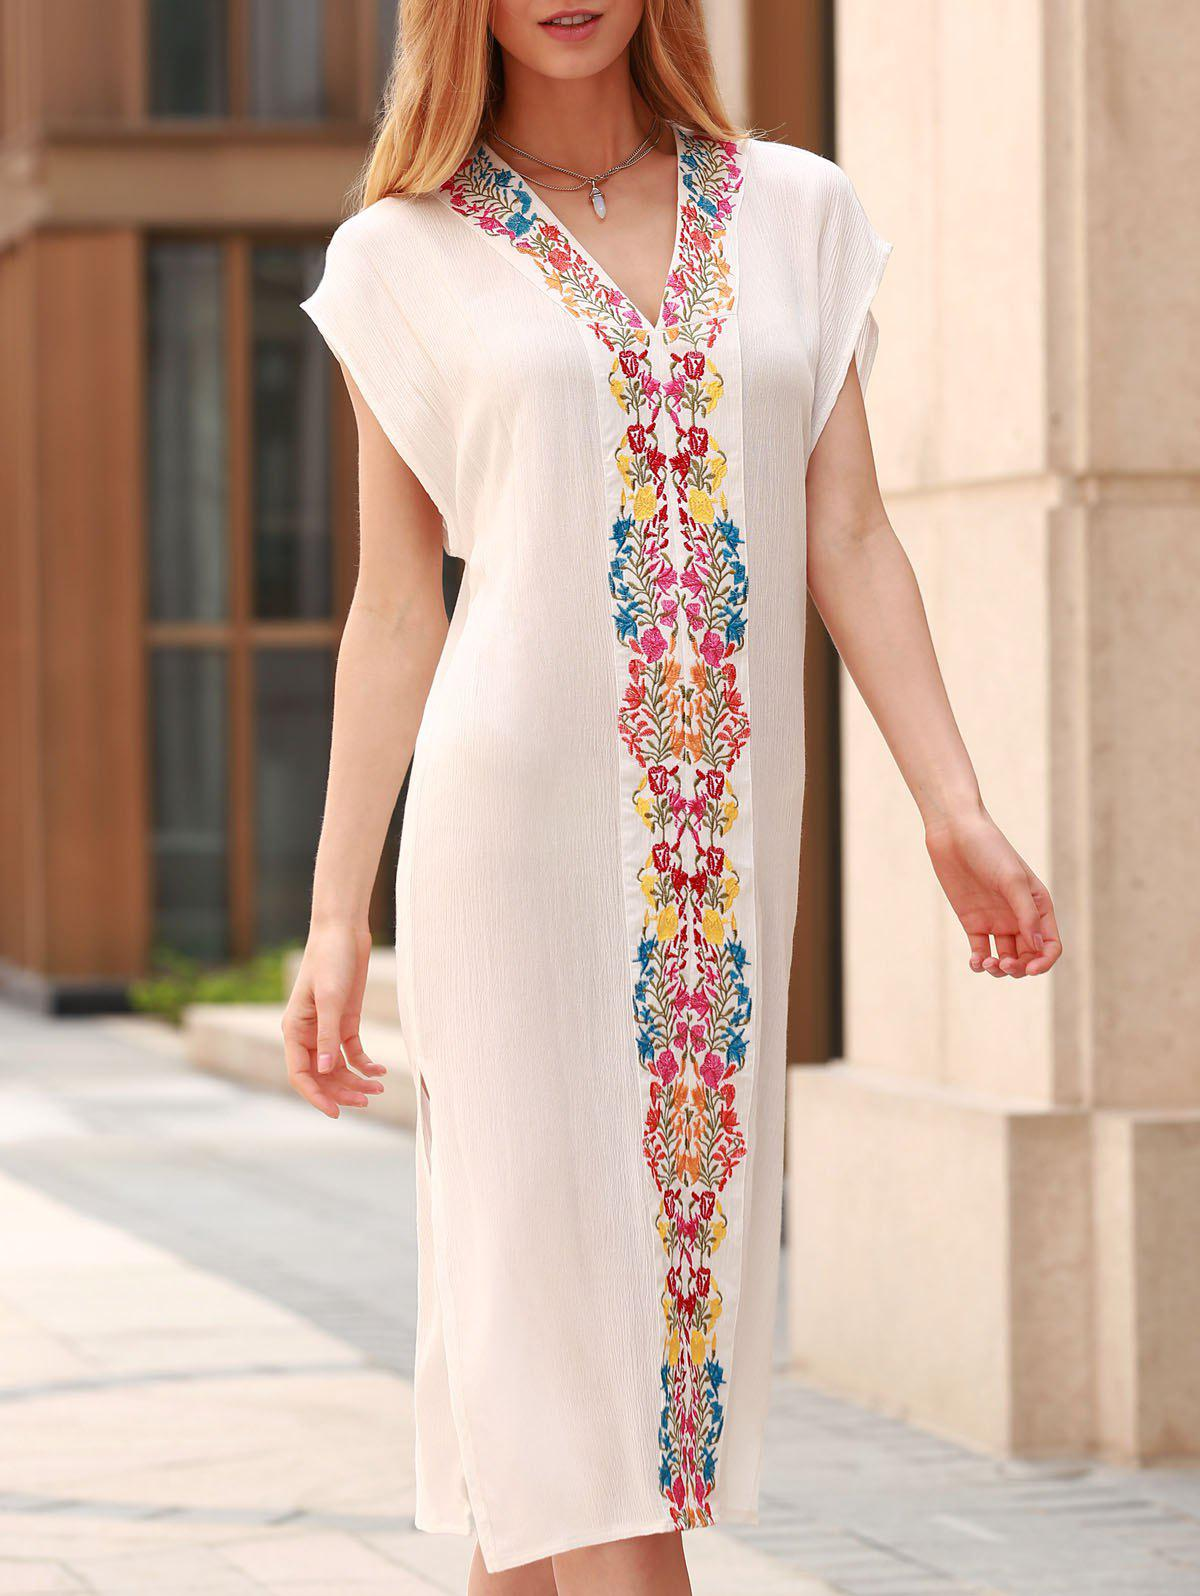 Bohemian V-Neck Short Sleeve Embroidered High Slit Women's Dress - WHITE S